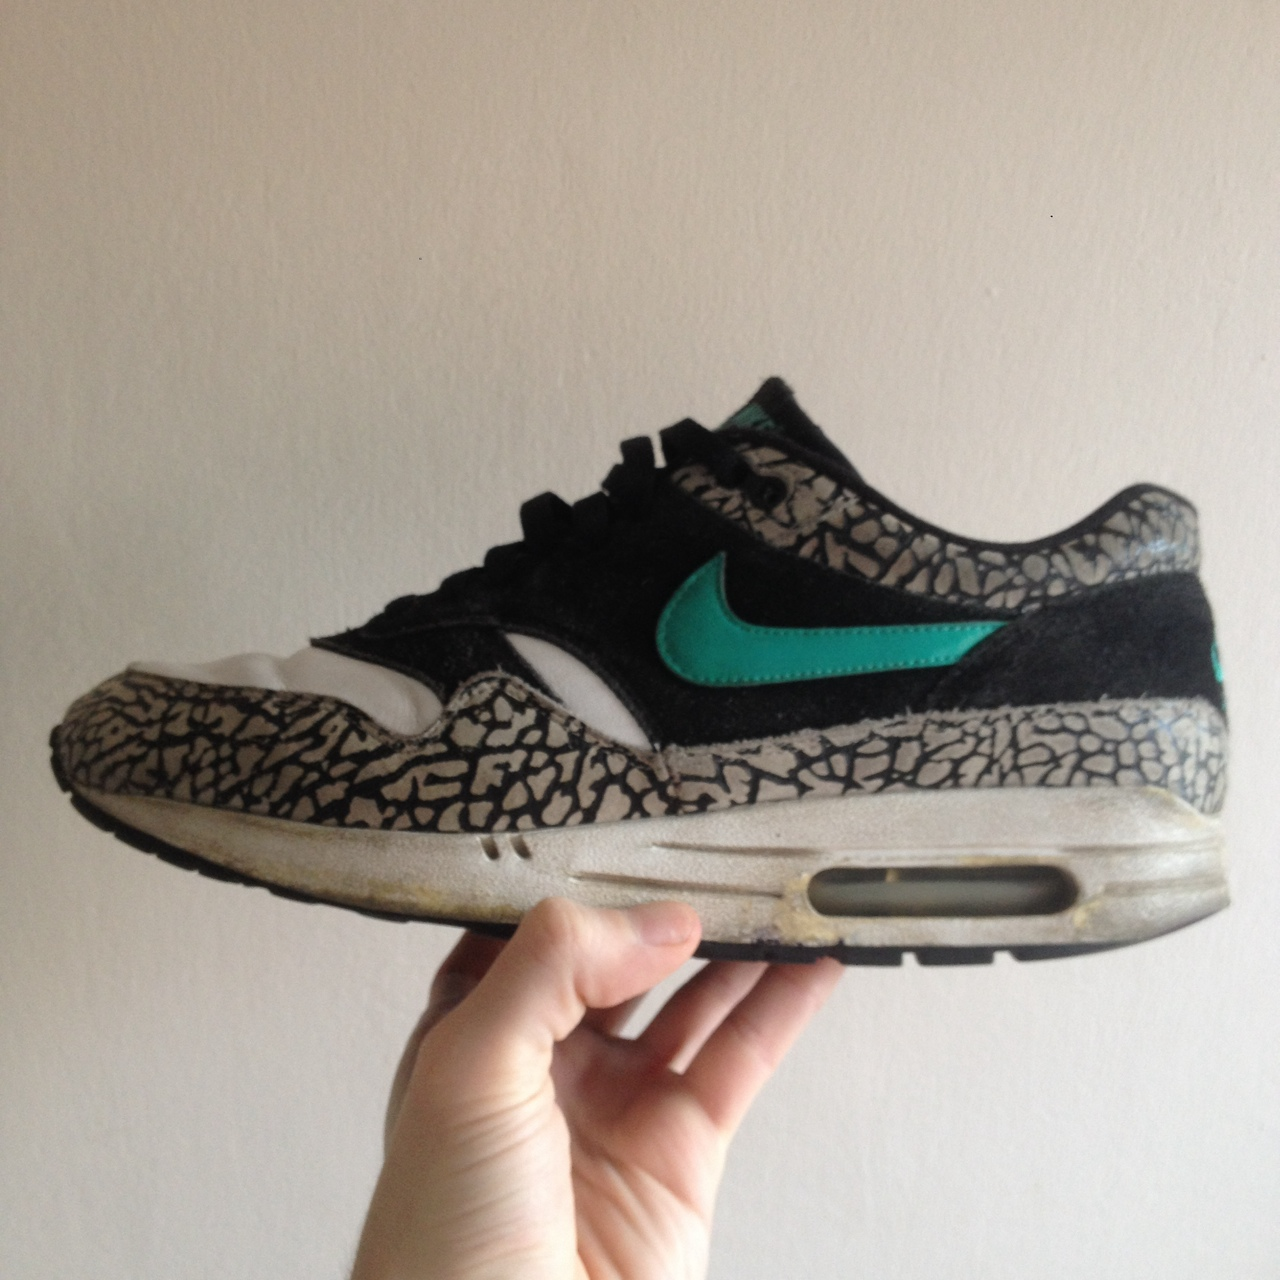 Nike air max 1 atmos elephant print. these are Depop